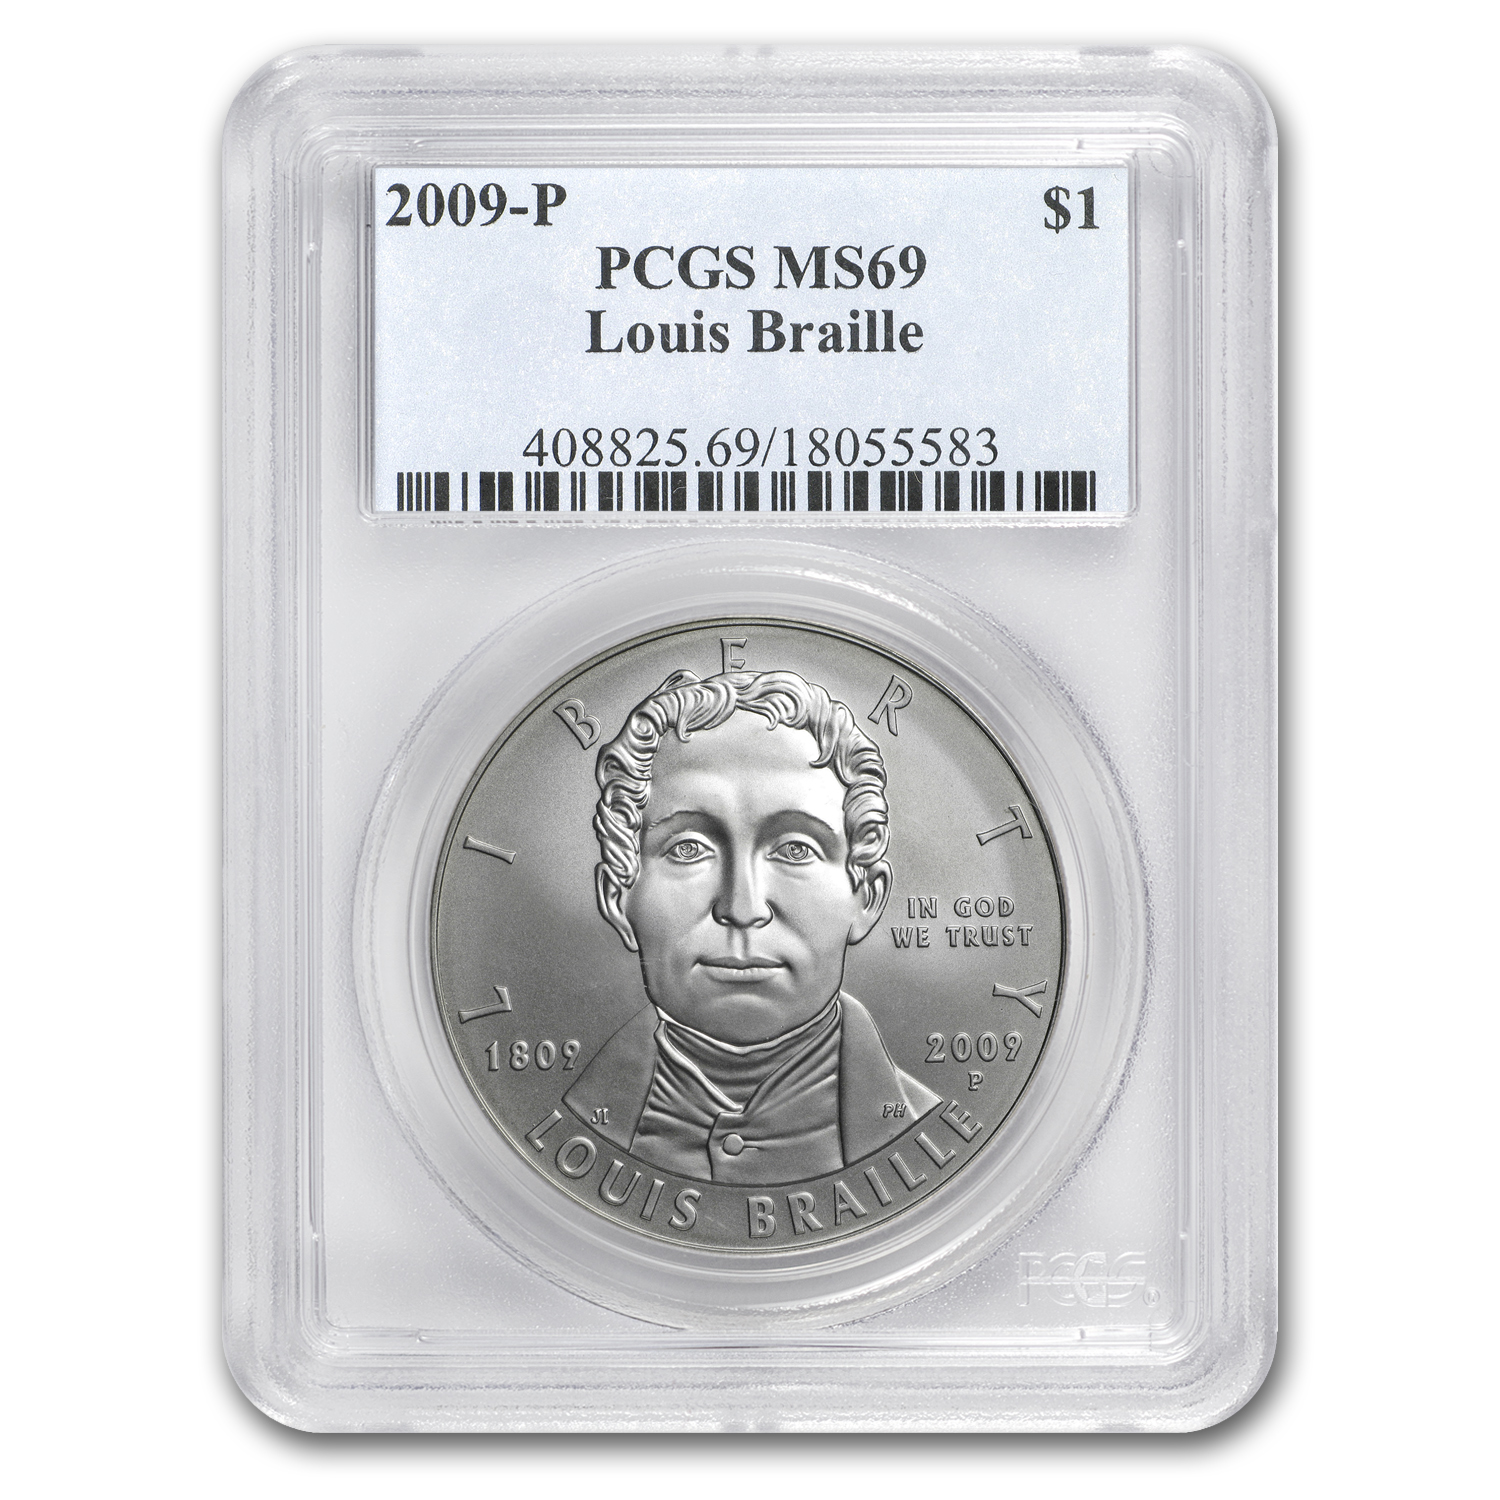 2009-P Louis Braille $1 Silver Commemorative MS-69 PCGS